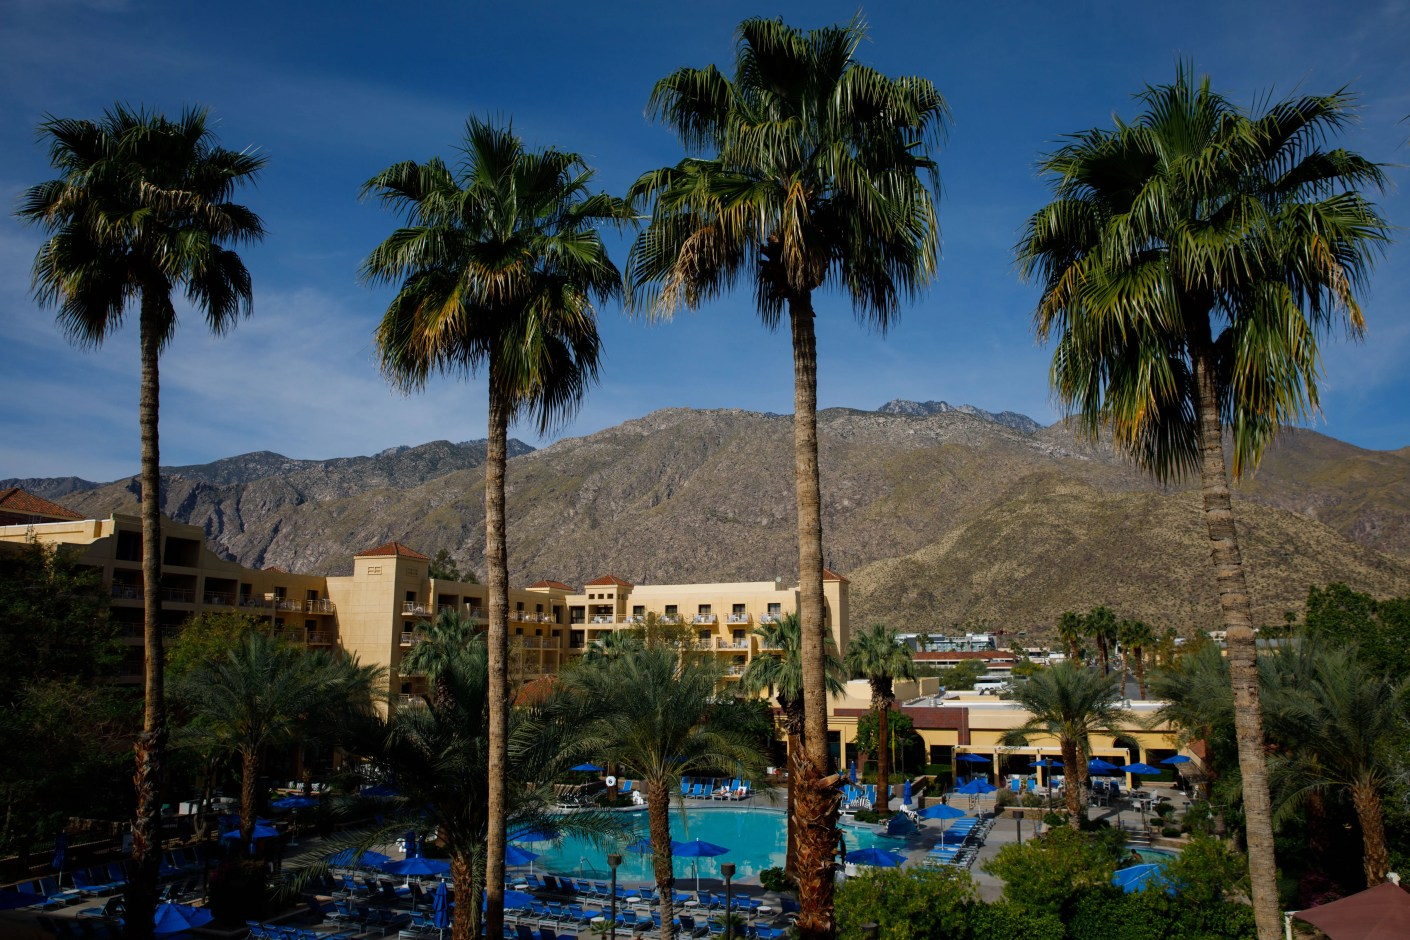 "The balcony view of the pool from the third floor ""junior suite"" of the Renaissance Palm Springs hotel on Sunday, April 14, 2019 in Palm Springs, Calif. (Photo by Patrick T. Fallon/The Points Guy)"